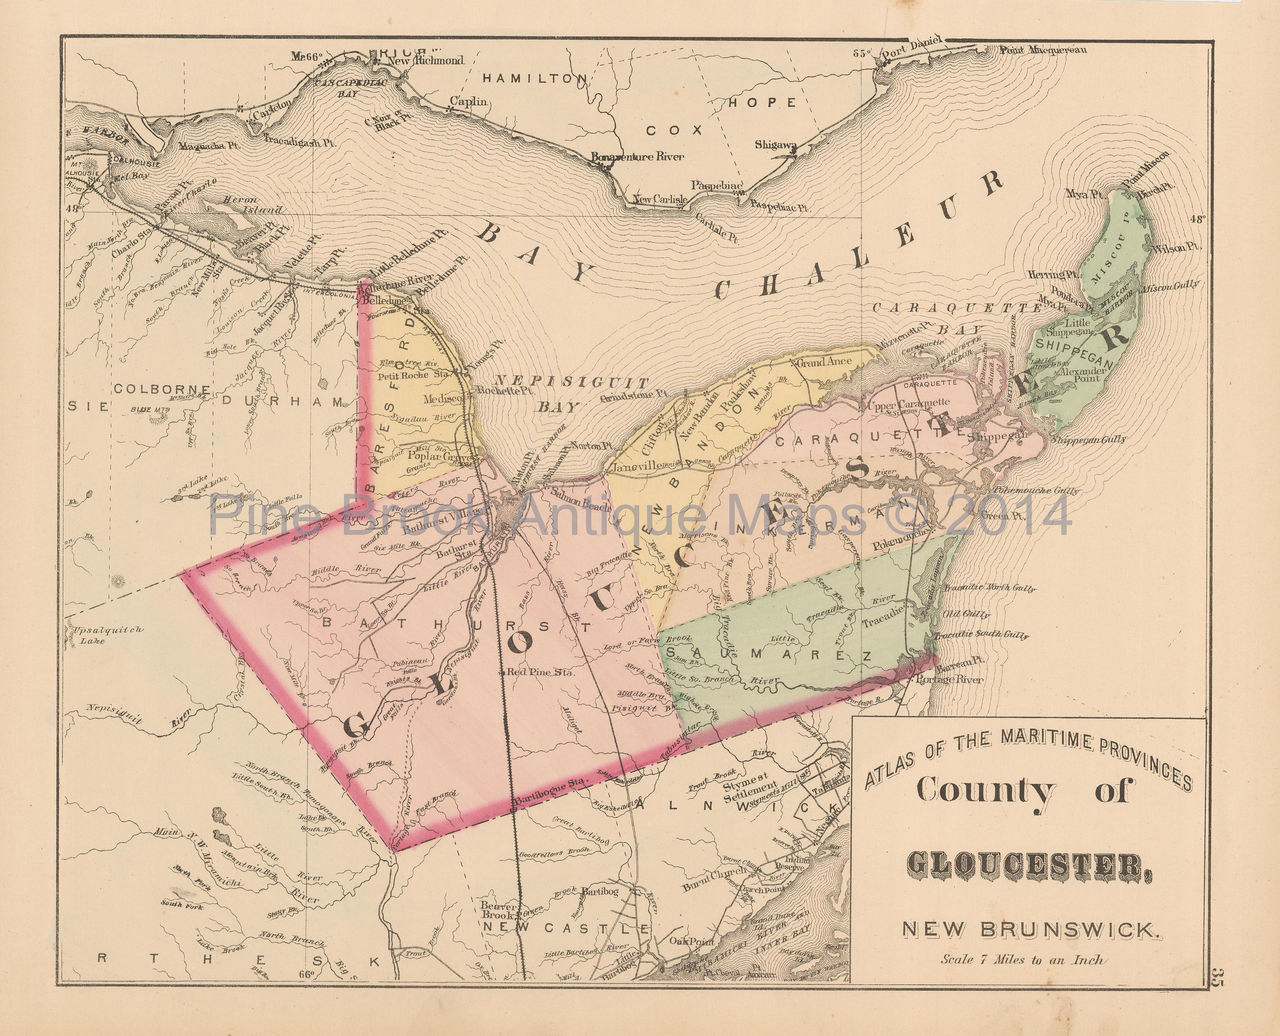 Gloucester County New Brunswick Antique Map Roe 1878 Authentic Decor on map of washington county, map of lincoln county, map of appomattox county, map of essex county, map of worc county, map of amelia county, map of grand isle county, map of belfast county, map of clarke county, map of portland county, map of st mary's county, map of york county, map of prince george's county, map of italy county, map of rockbridge county, map of new hampshire county, map of maury county, map of rappahannock county, map of preston county, map of carlisle county,